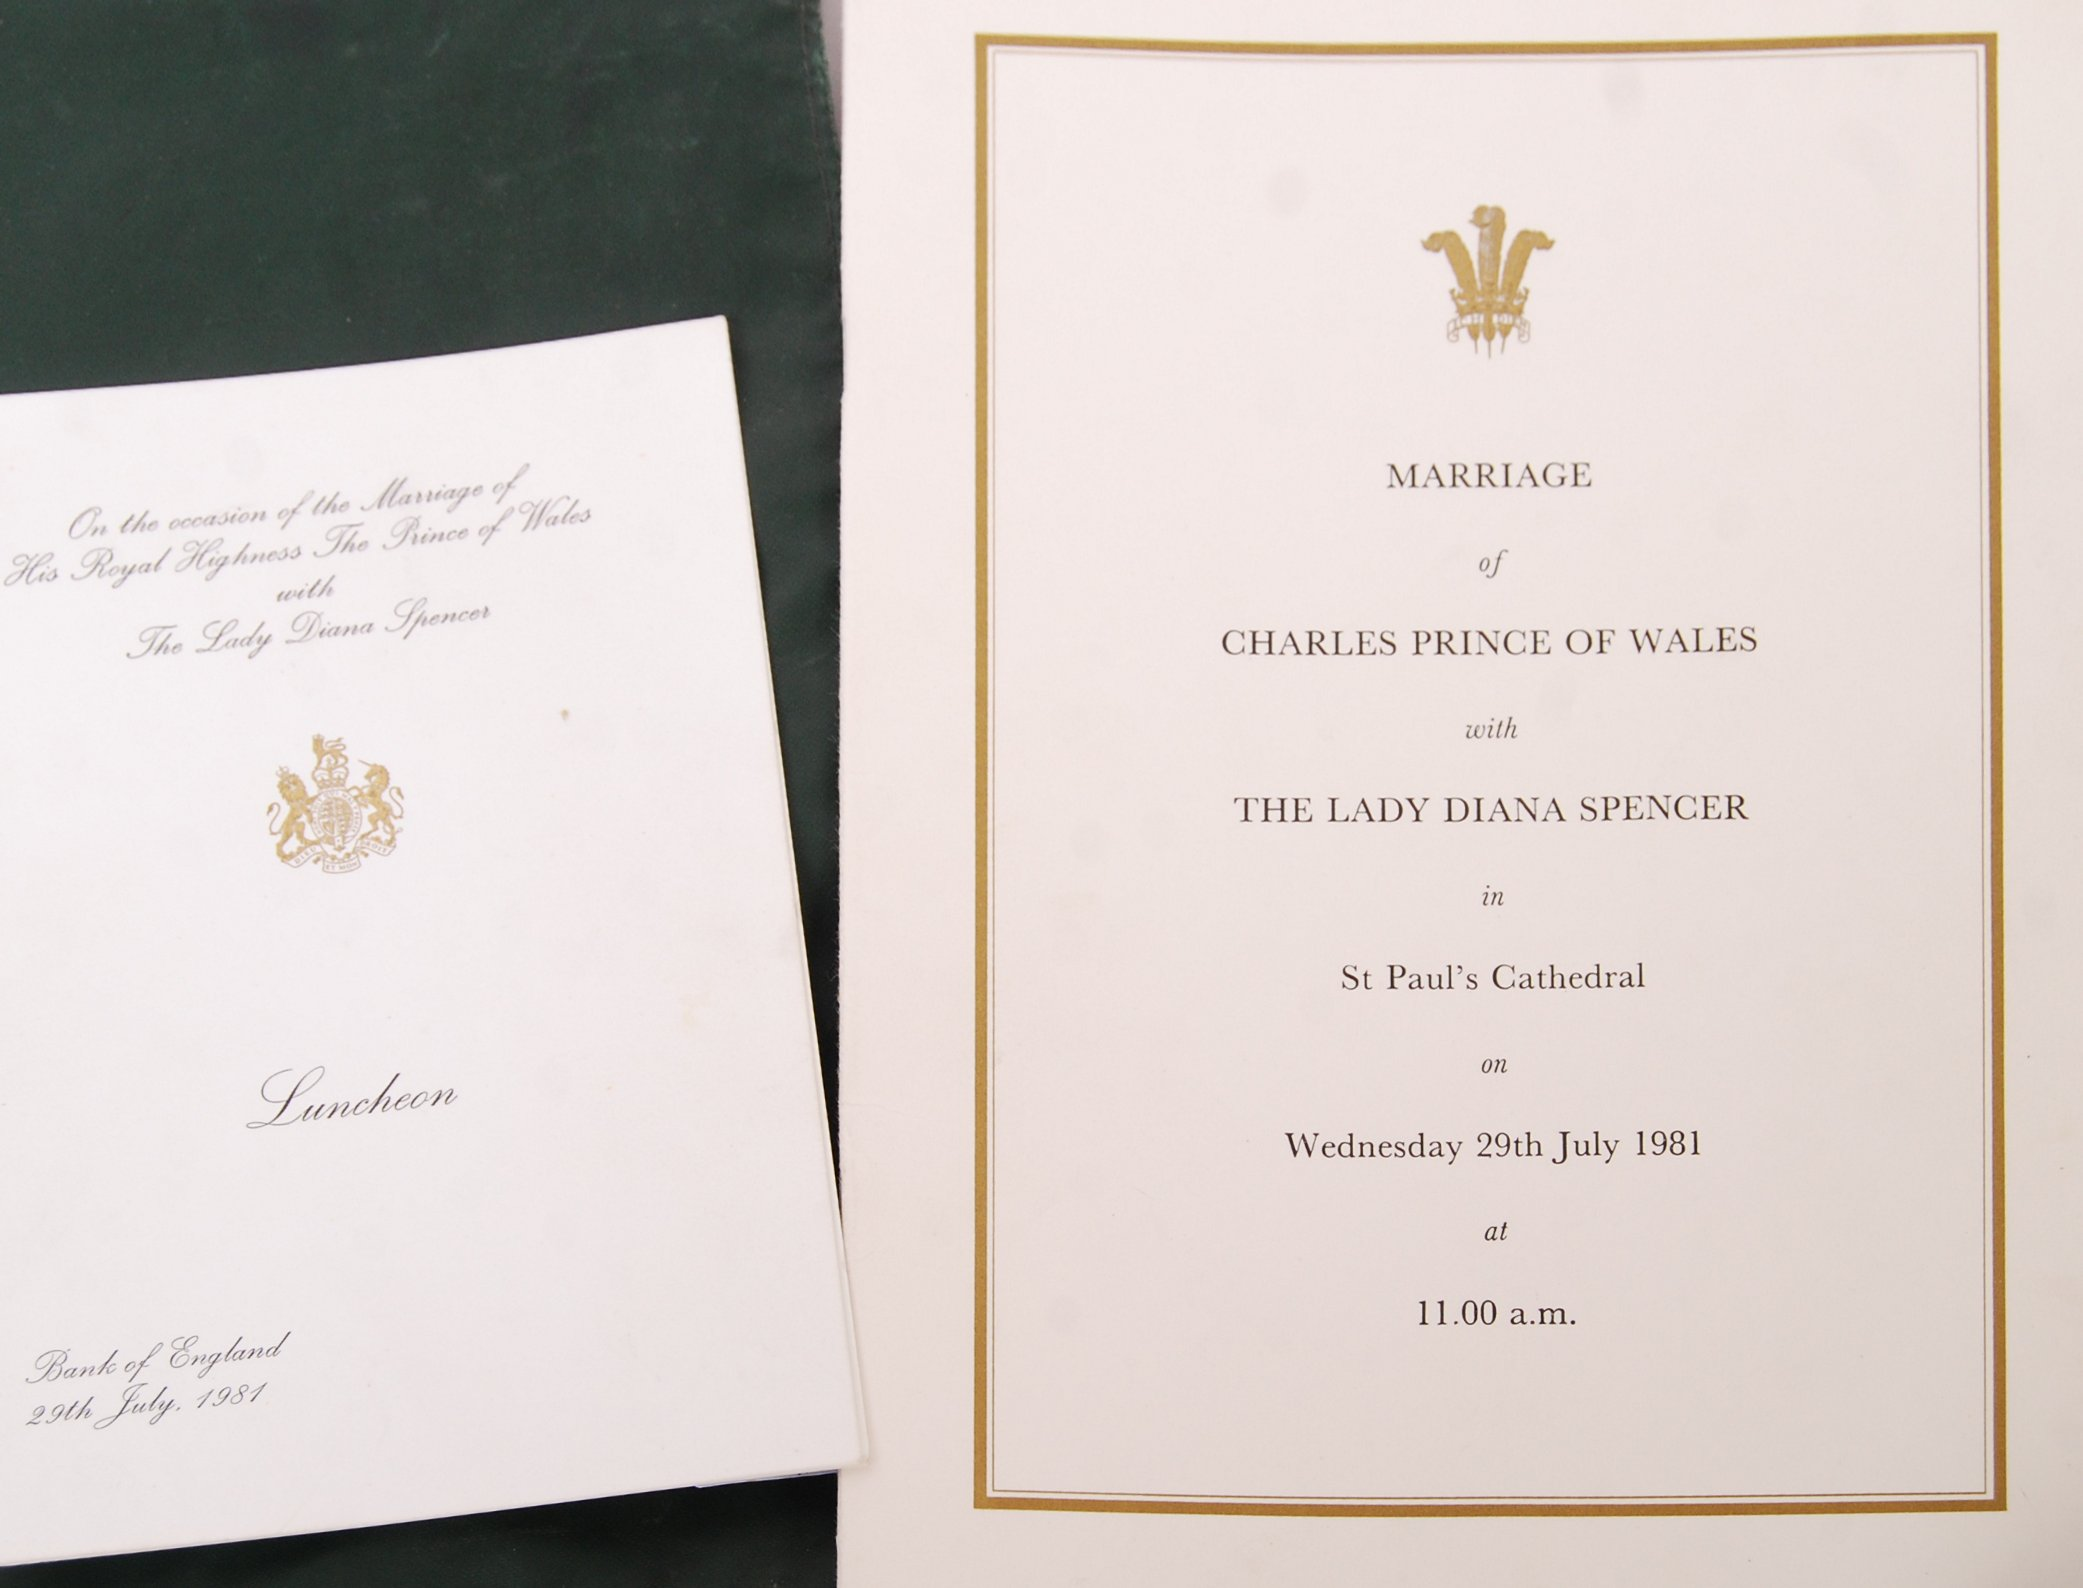 MARRIAGE OF THE PRINCE OF WALES & LADY DIANA SPENCER WEDDING EPHEMERA - Image 3 of 6